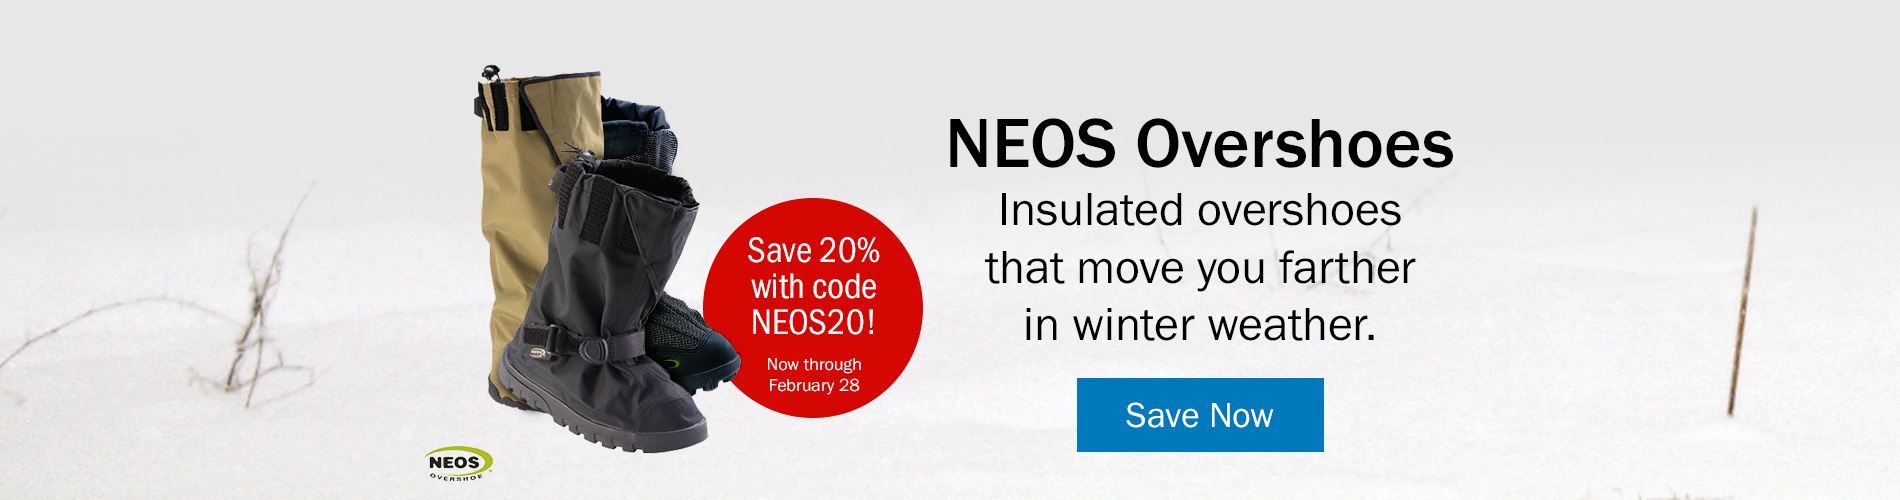 NEOS Overshoes - Save 20% with code NEOS20! Now through February 28. Save Now >